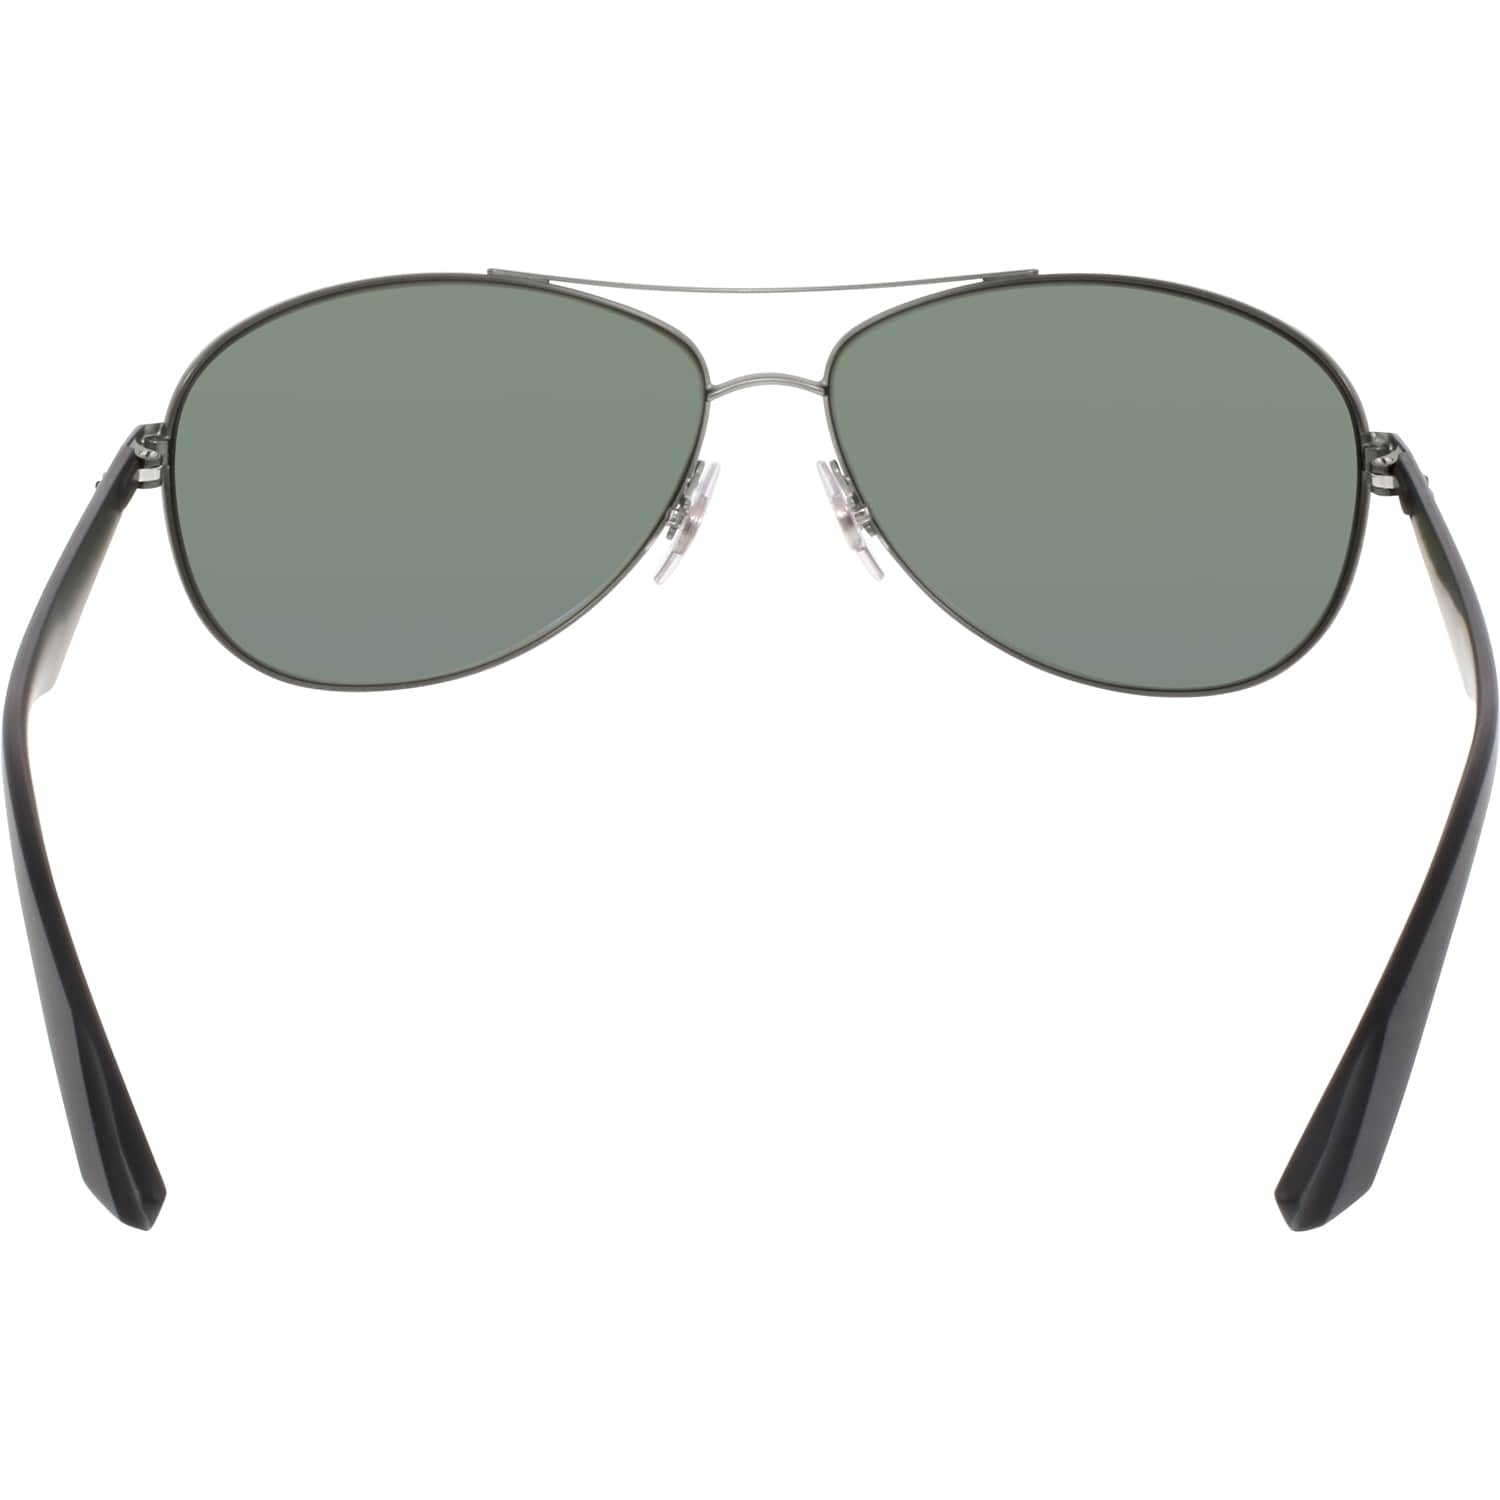 675094afdaa Shop Ray-Ban RB3526 029 9A Gunmetal Black Frame Polarized Green 63mm Lens  Sunglasses - Free Shipping Today - Overstock.com - 14328614